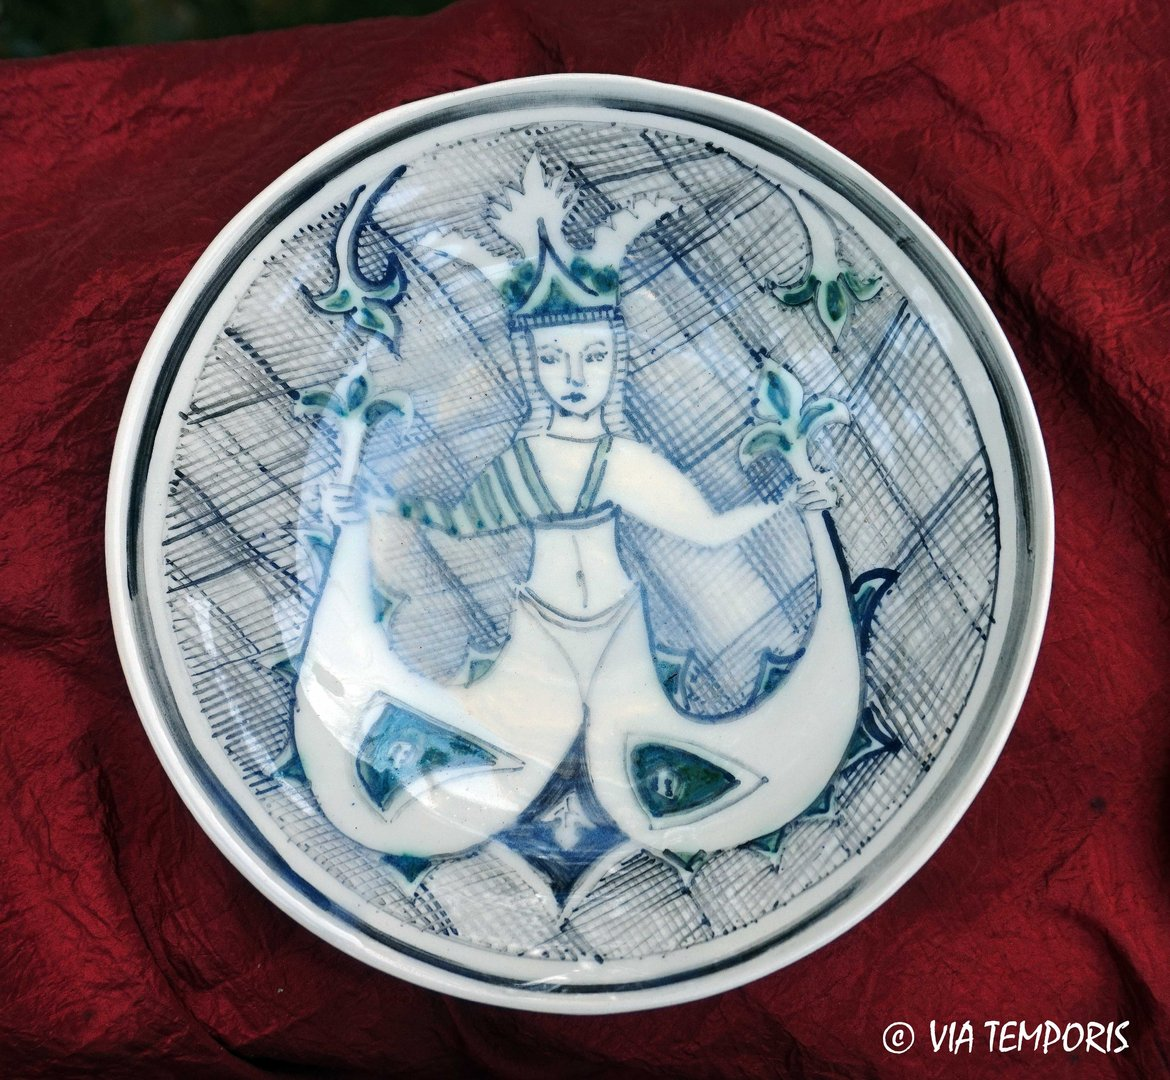 MEDIEVAL POTTERY - MAJOLICA PLATE WITH WOMAN DECOR  2